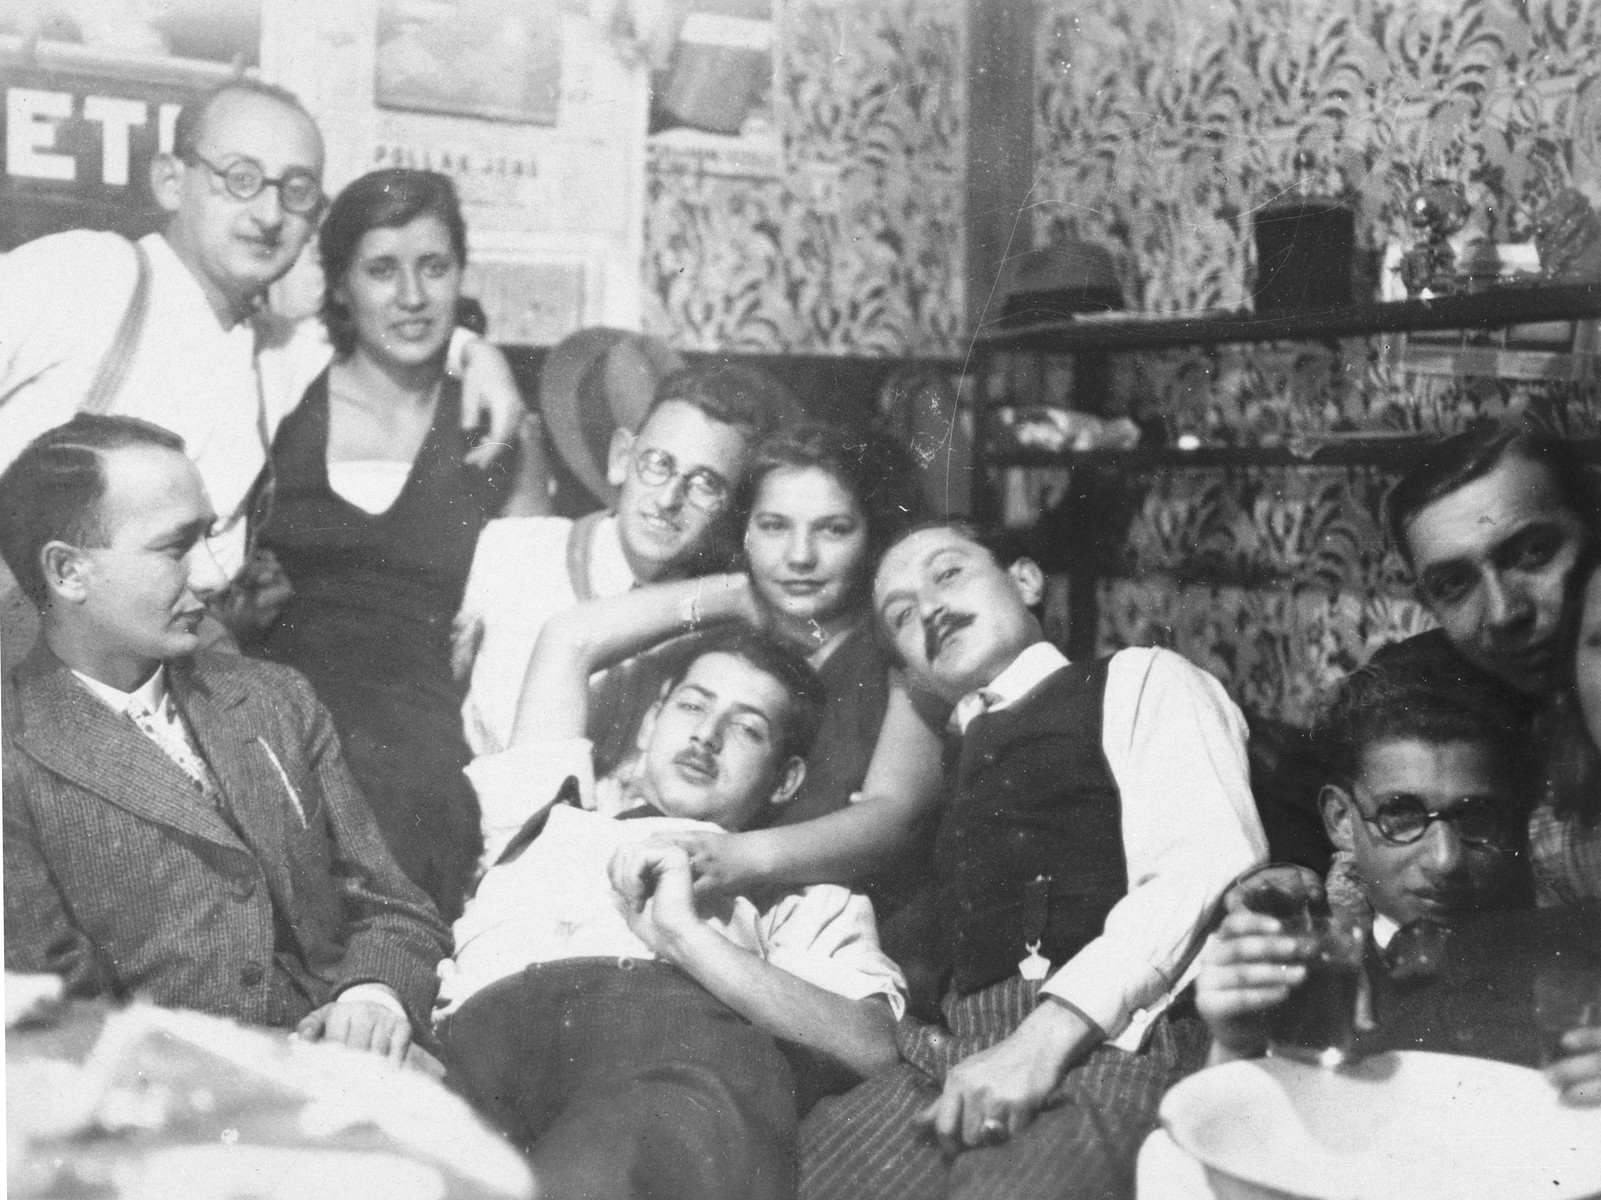 A group of Jewish friends gathers in an apartment in Kalocsa, Hungary.